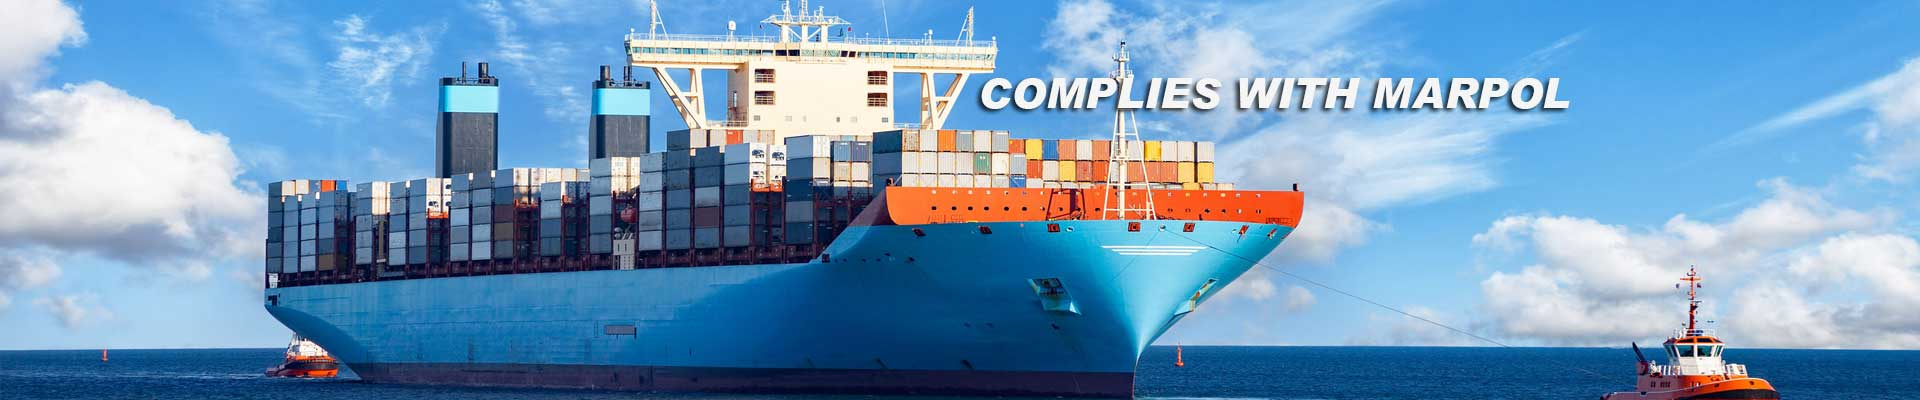 marine kleen - complies with marpol - environmentally friendly cleaner